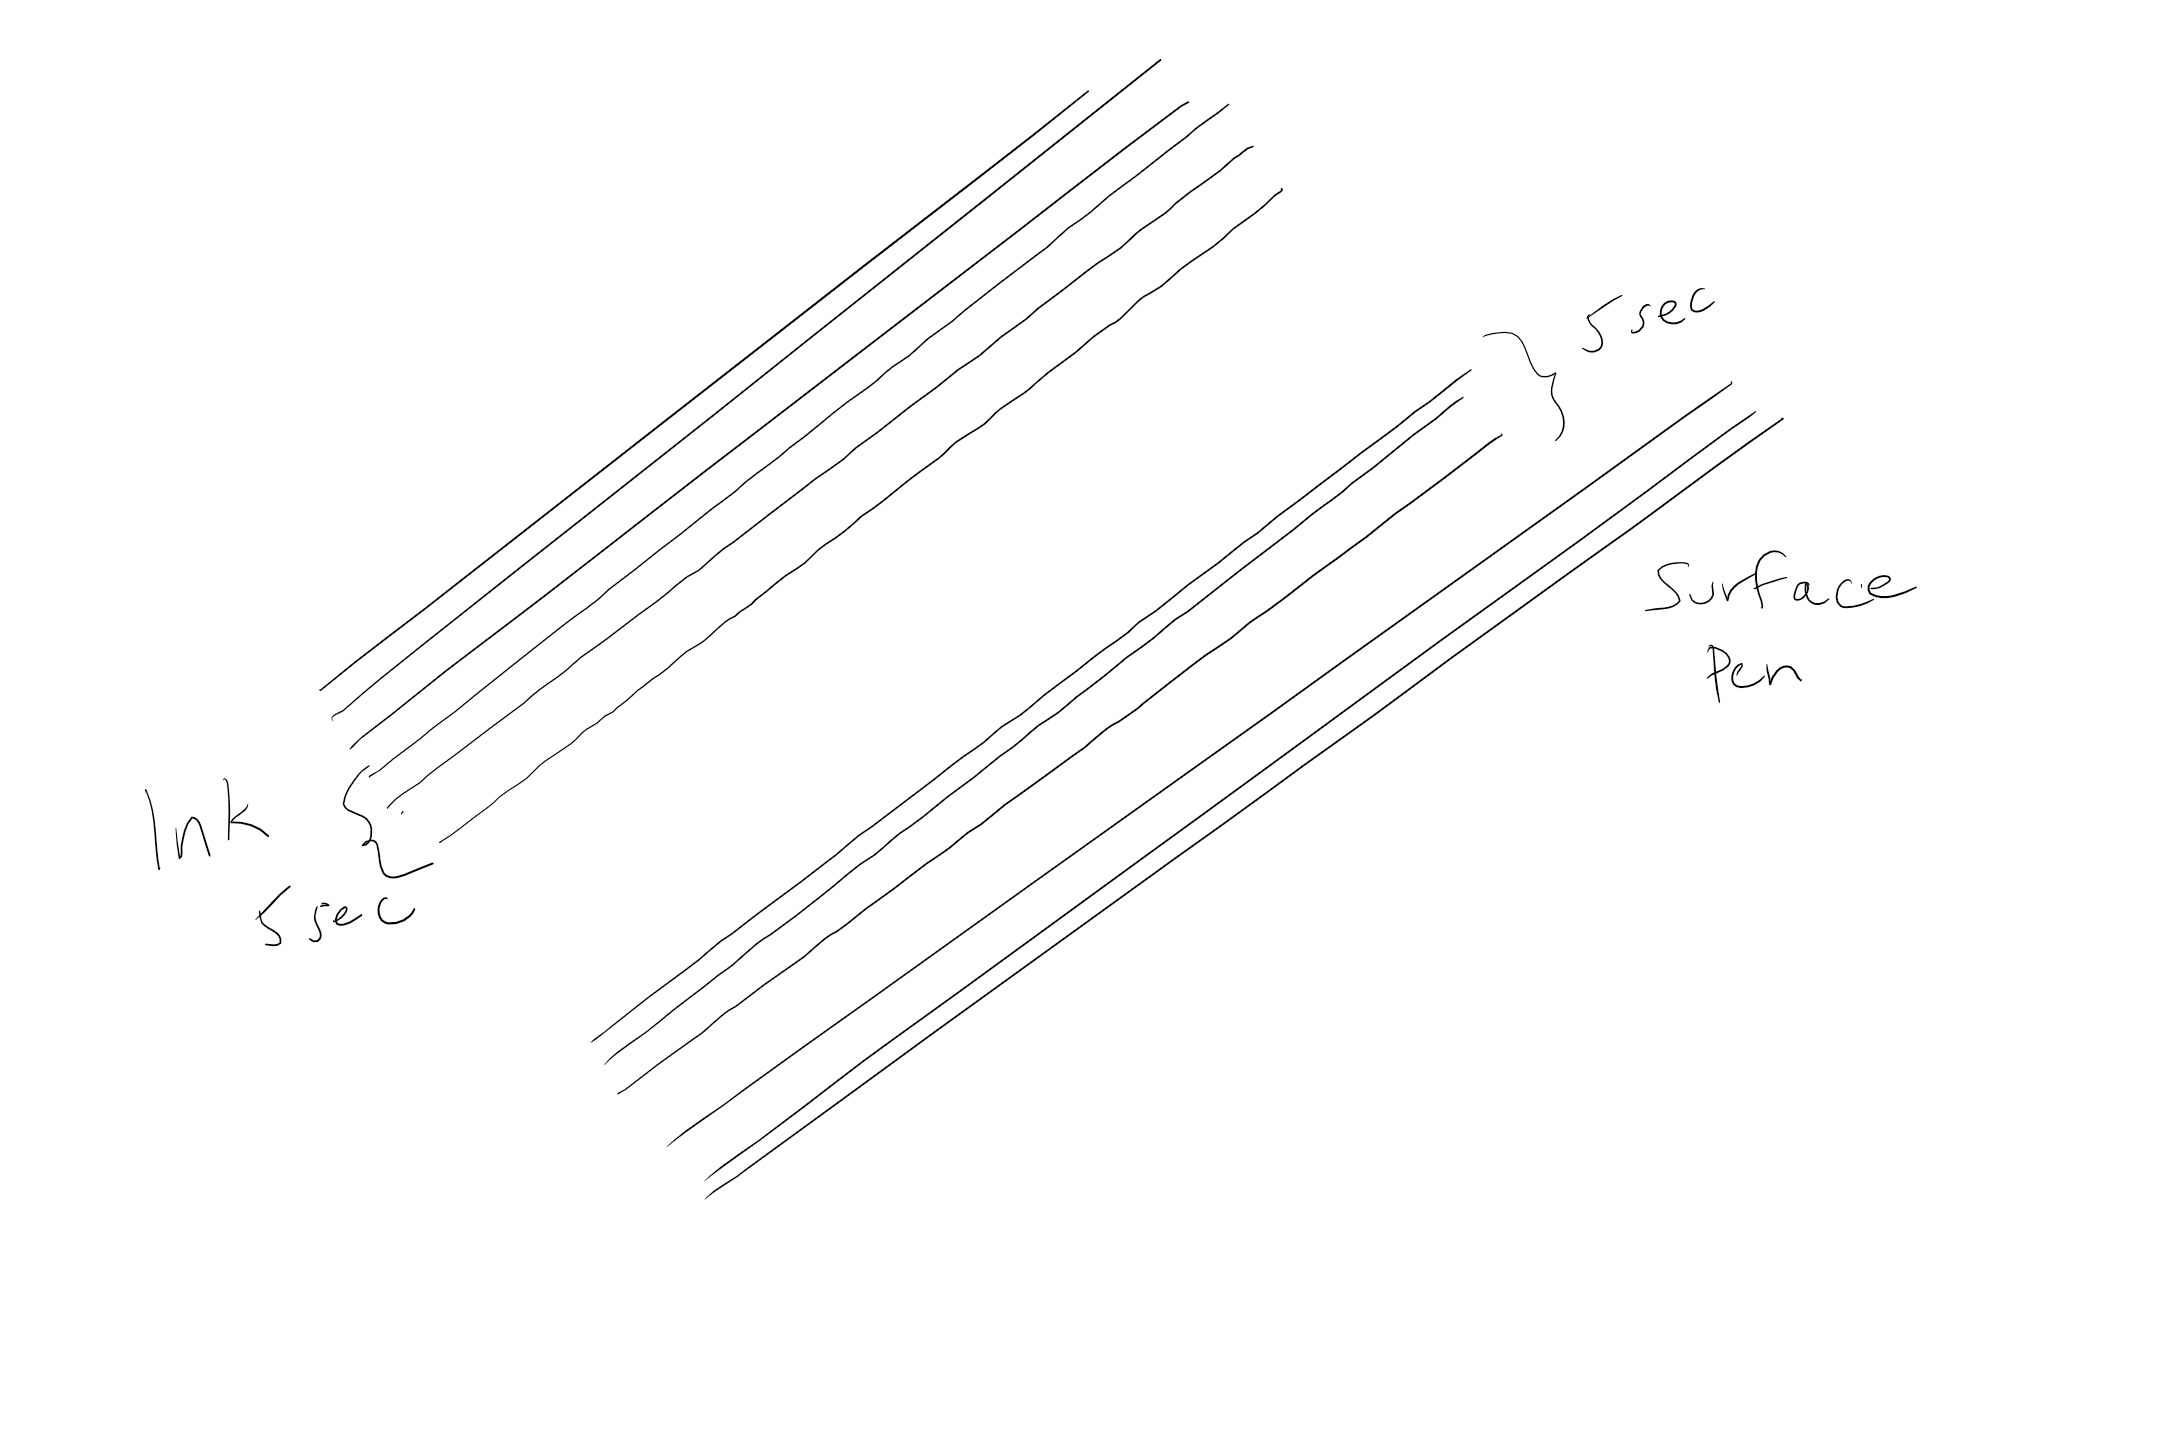 Not a fan of ruler on glass jitter tests, but here are my results on the Surface Pro 3, using a 1 px brush in Sketchpad, which has no stabilization or stroke correction. At 100% magnification, I drew out several five inch lines at five seconds per line. In this particular image, the Surface Pen with 2H nib performed slightly better than the Bamboo Ink with hard (black) nib. Both lines were perfect once I increased my stroke speed to my natural velocity.